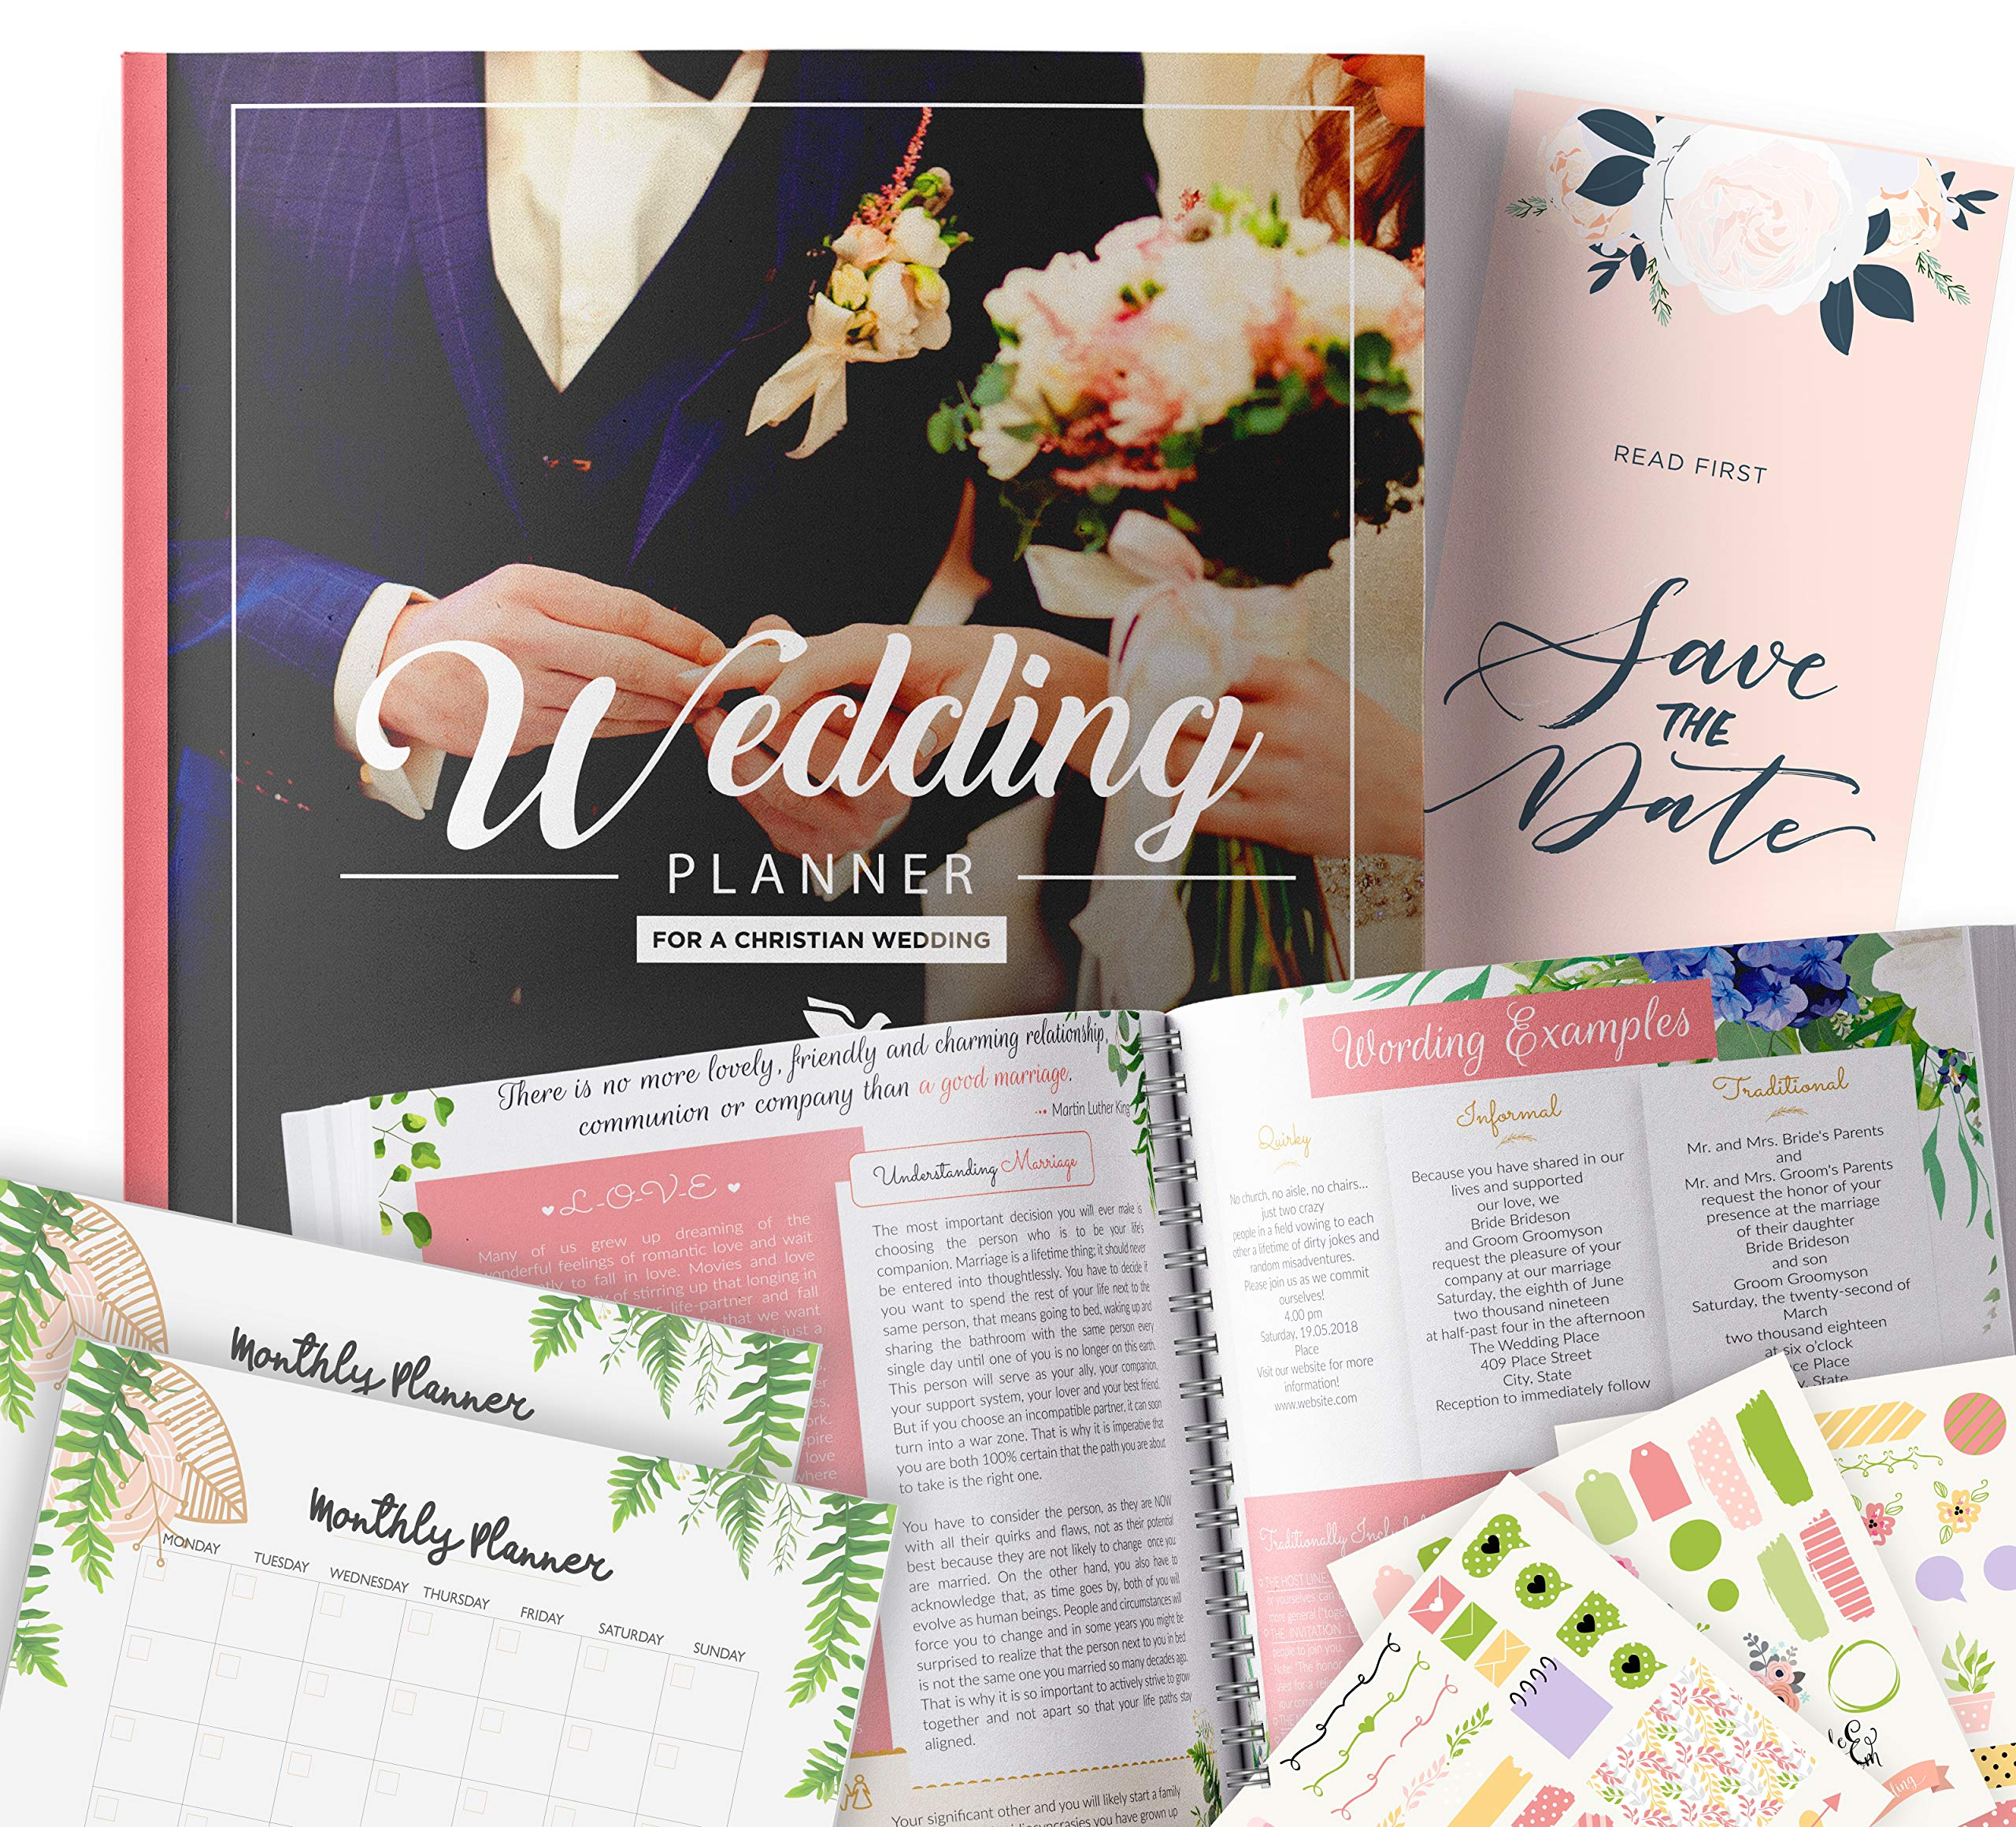 Christian Wedding Planner   Step-By-Step Binder to Organize Your Dream Day Using Stickers, Photos & Pictures   Planning Journal to Organize Your Wedding   Gift for Brides   by Floating Daydreams